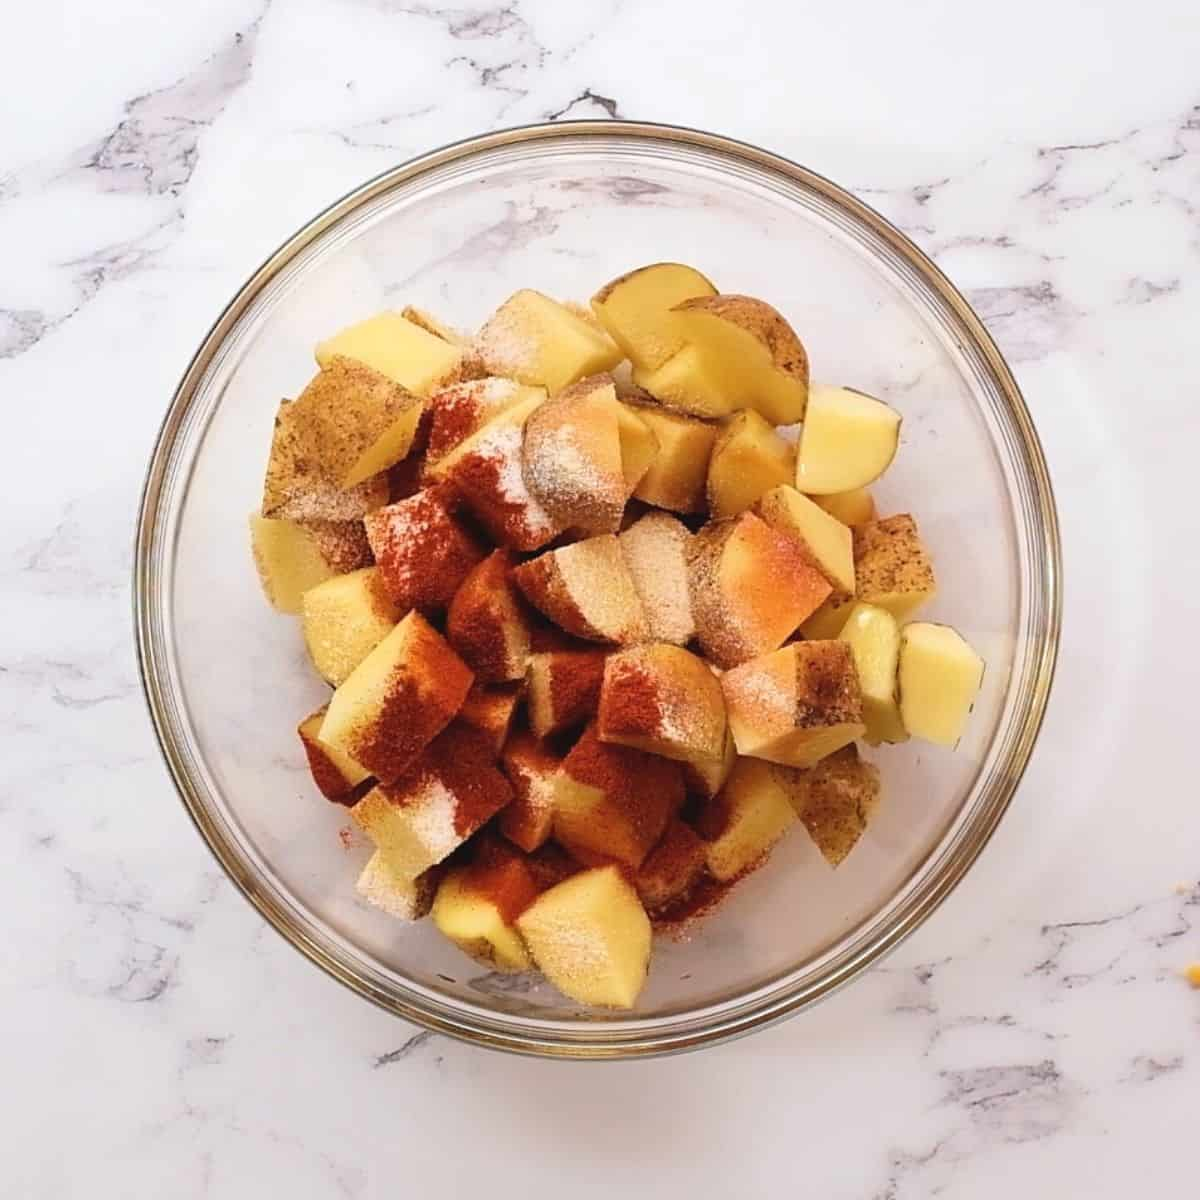 potatoes with buffalo seasonings in a clear bowl.